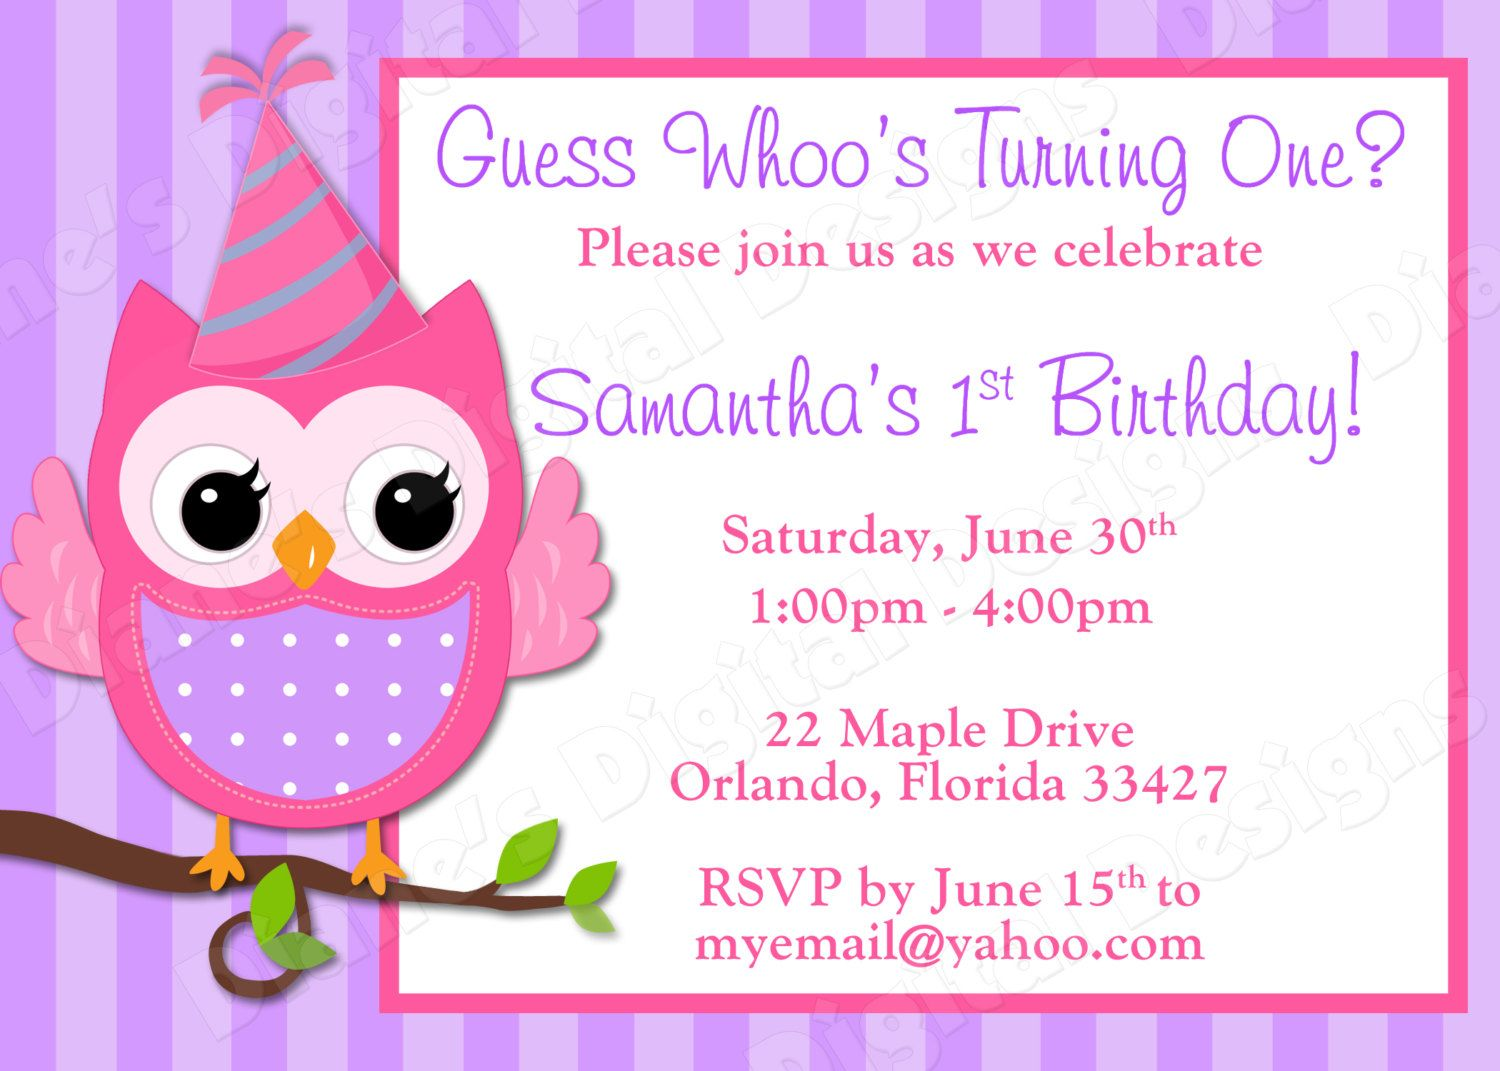 Birthday Invitation : Online Birthday Invitations   Free Invitation For You    Free Invitation For You  Online Birthday Invitations Templates